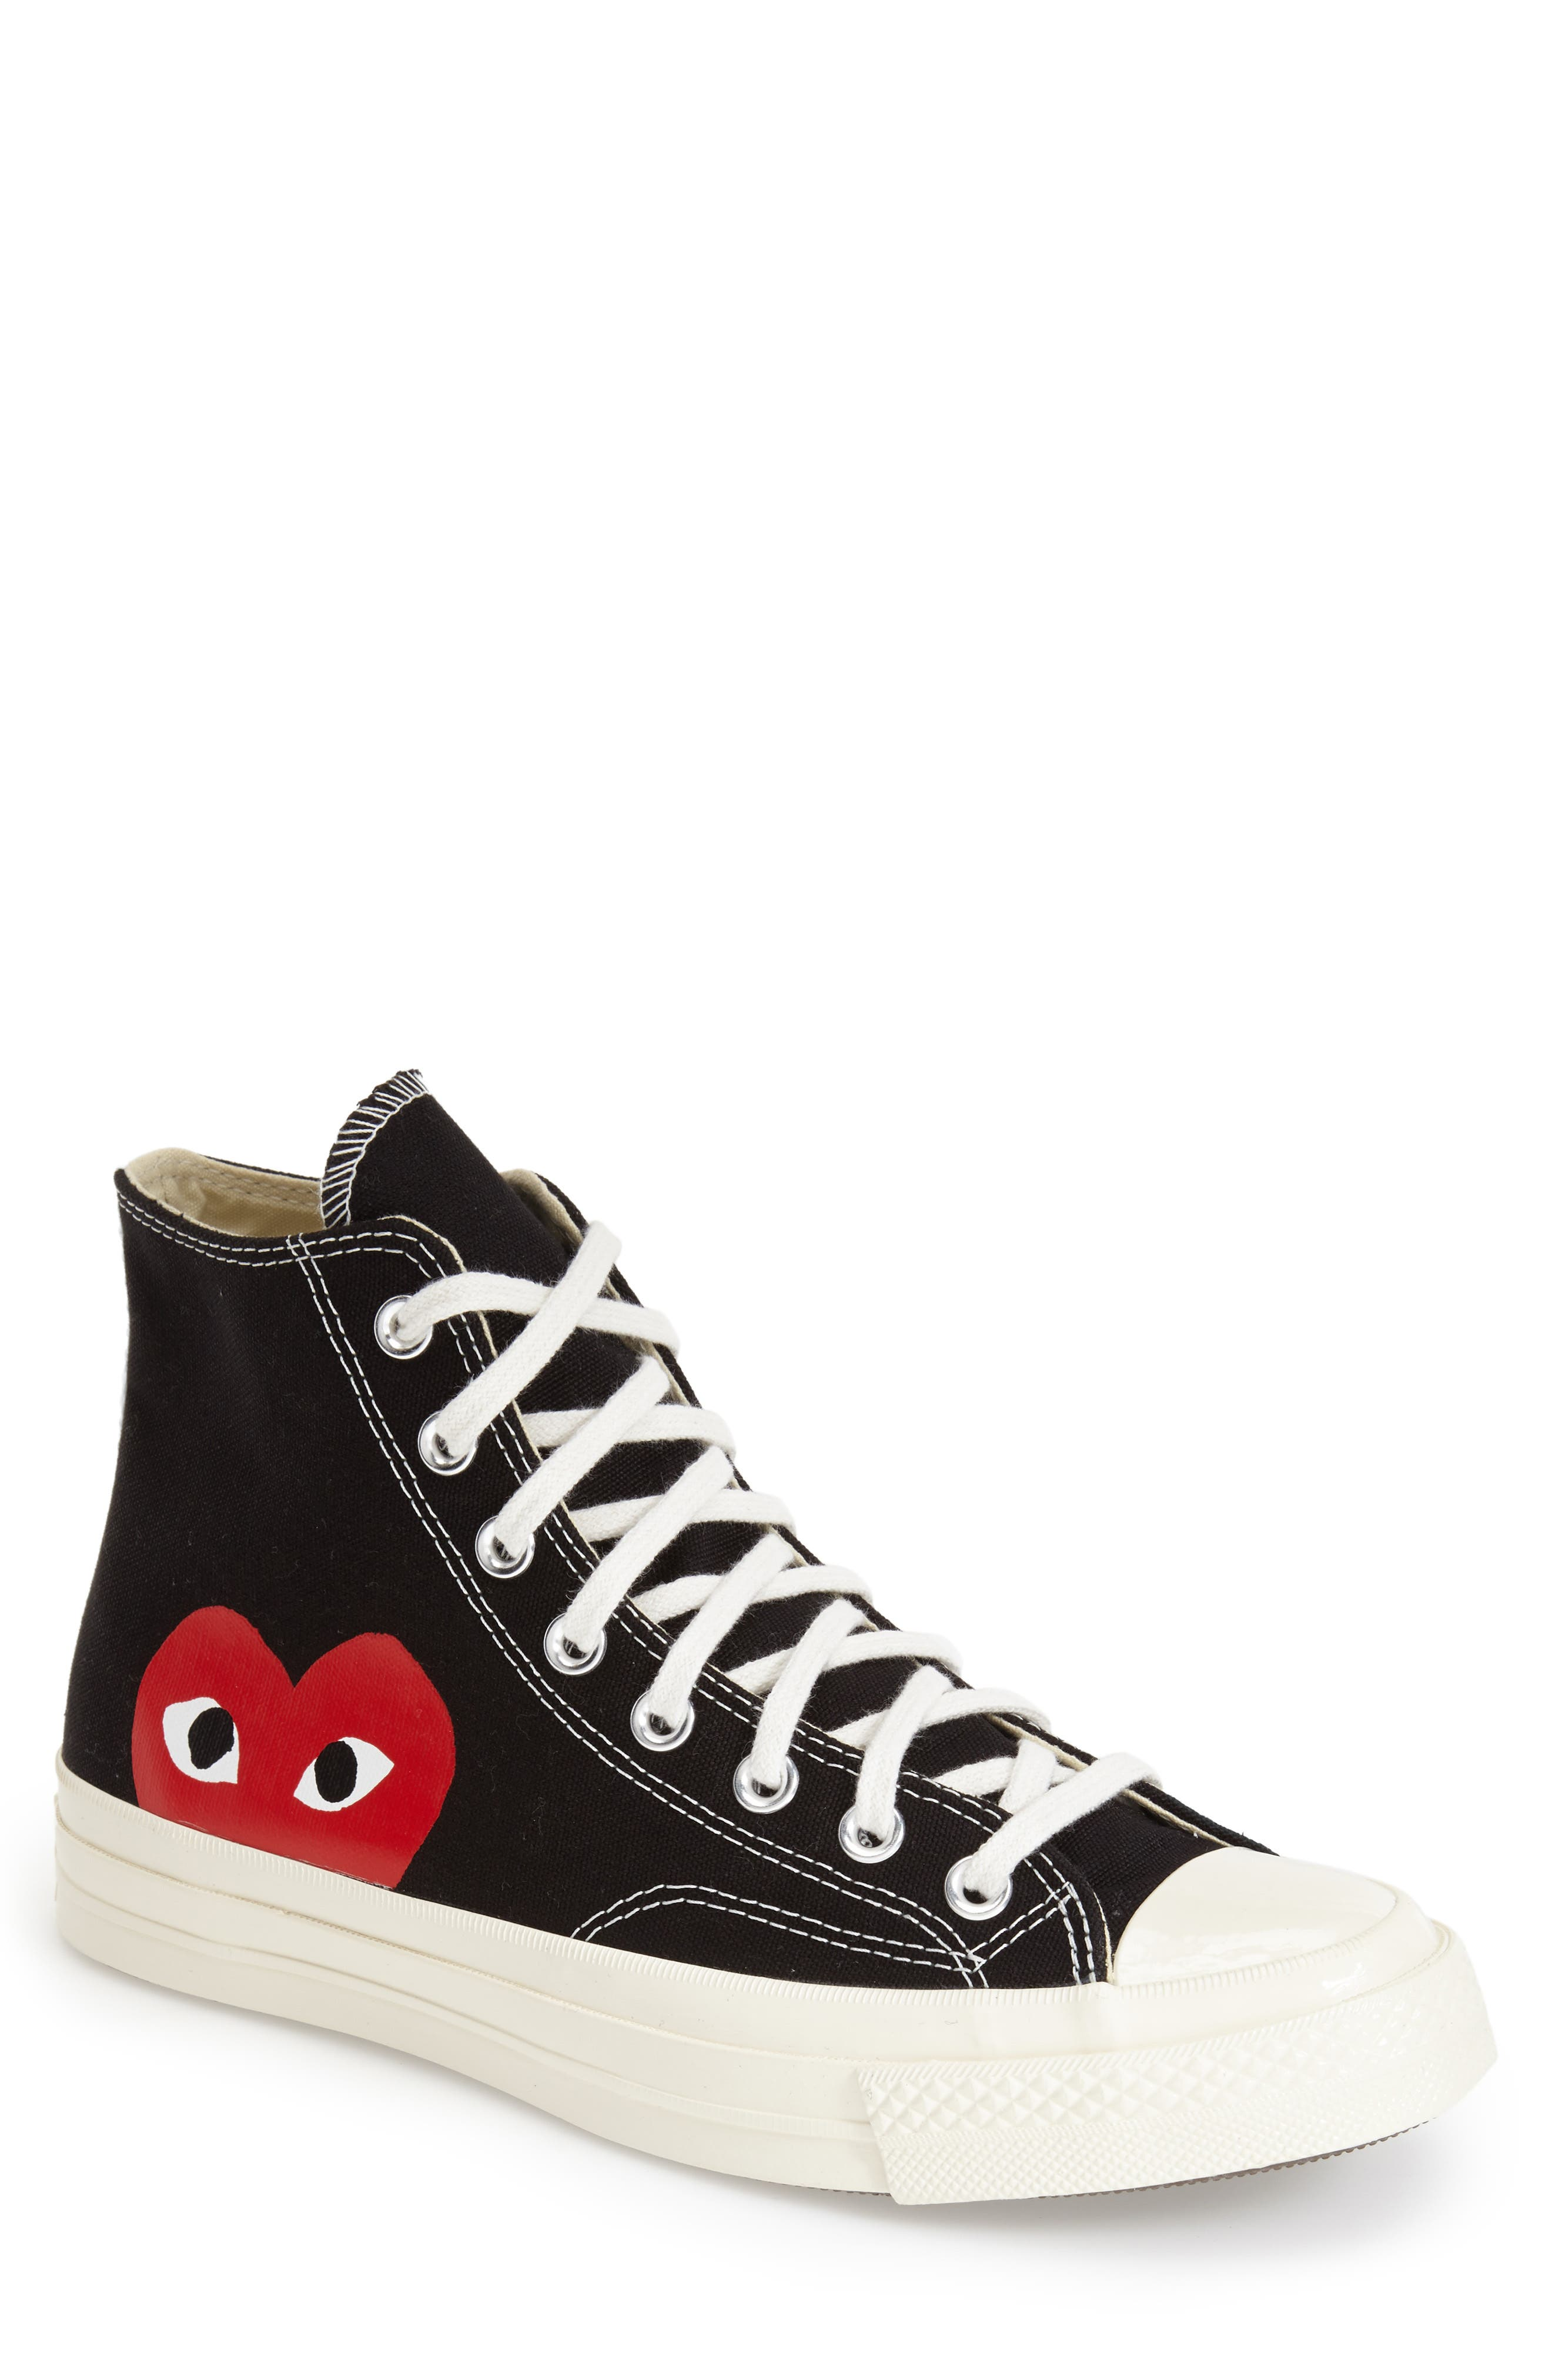 PLAY x Converse Chuck Taylor<sup>®</sup> - Hidden Heart High Top Sneaker,                             Main thumbnail 1, color,                             BLACK CANVAS